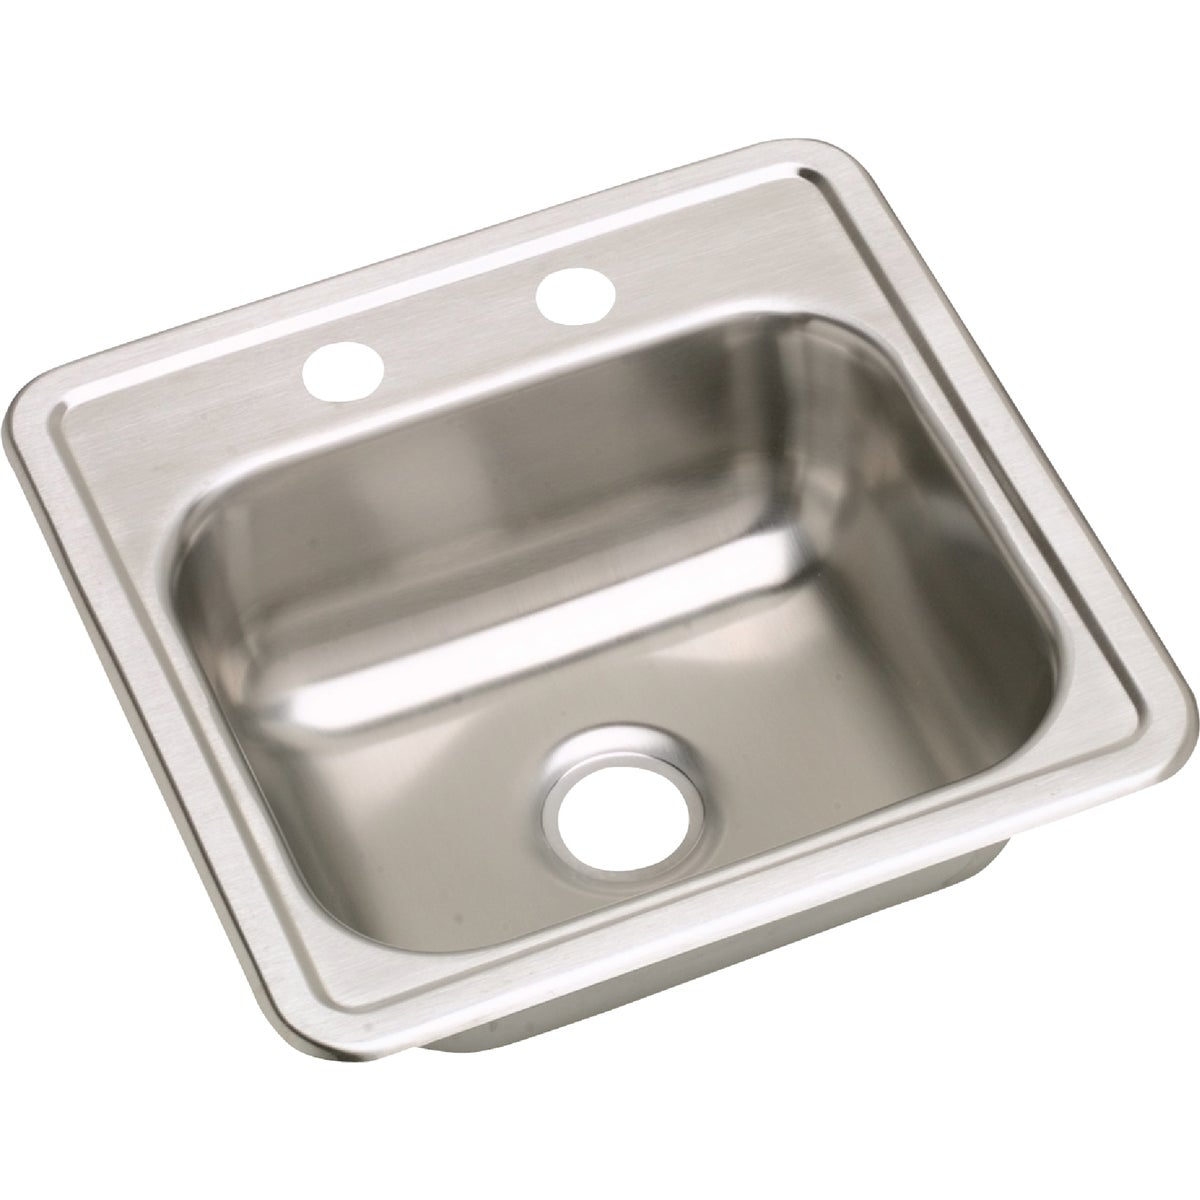 "5-1/2"" SS BAR SINK - NE15152 by Elkay Neptune"